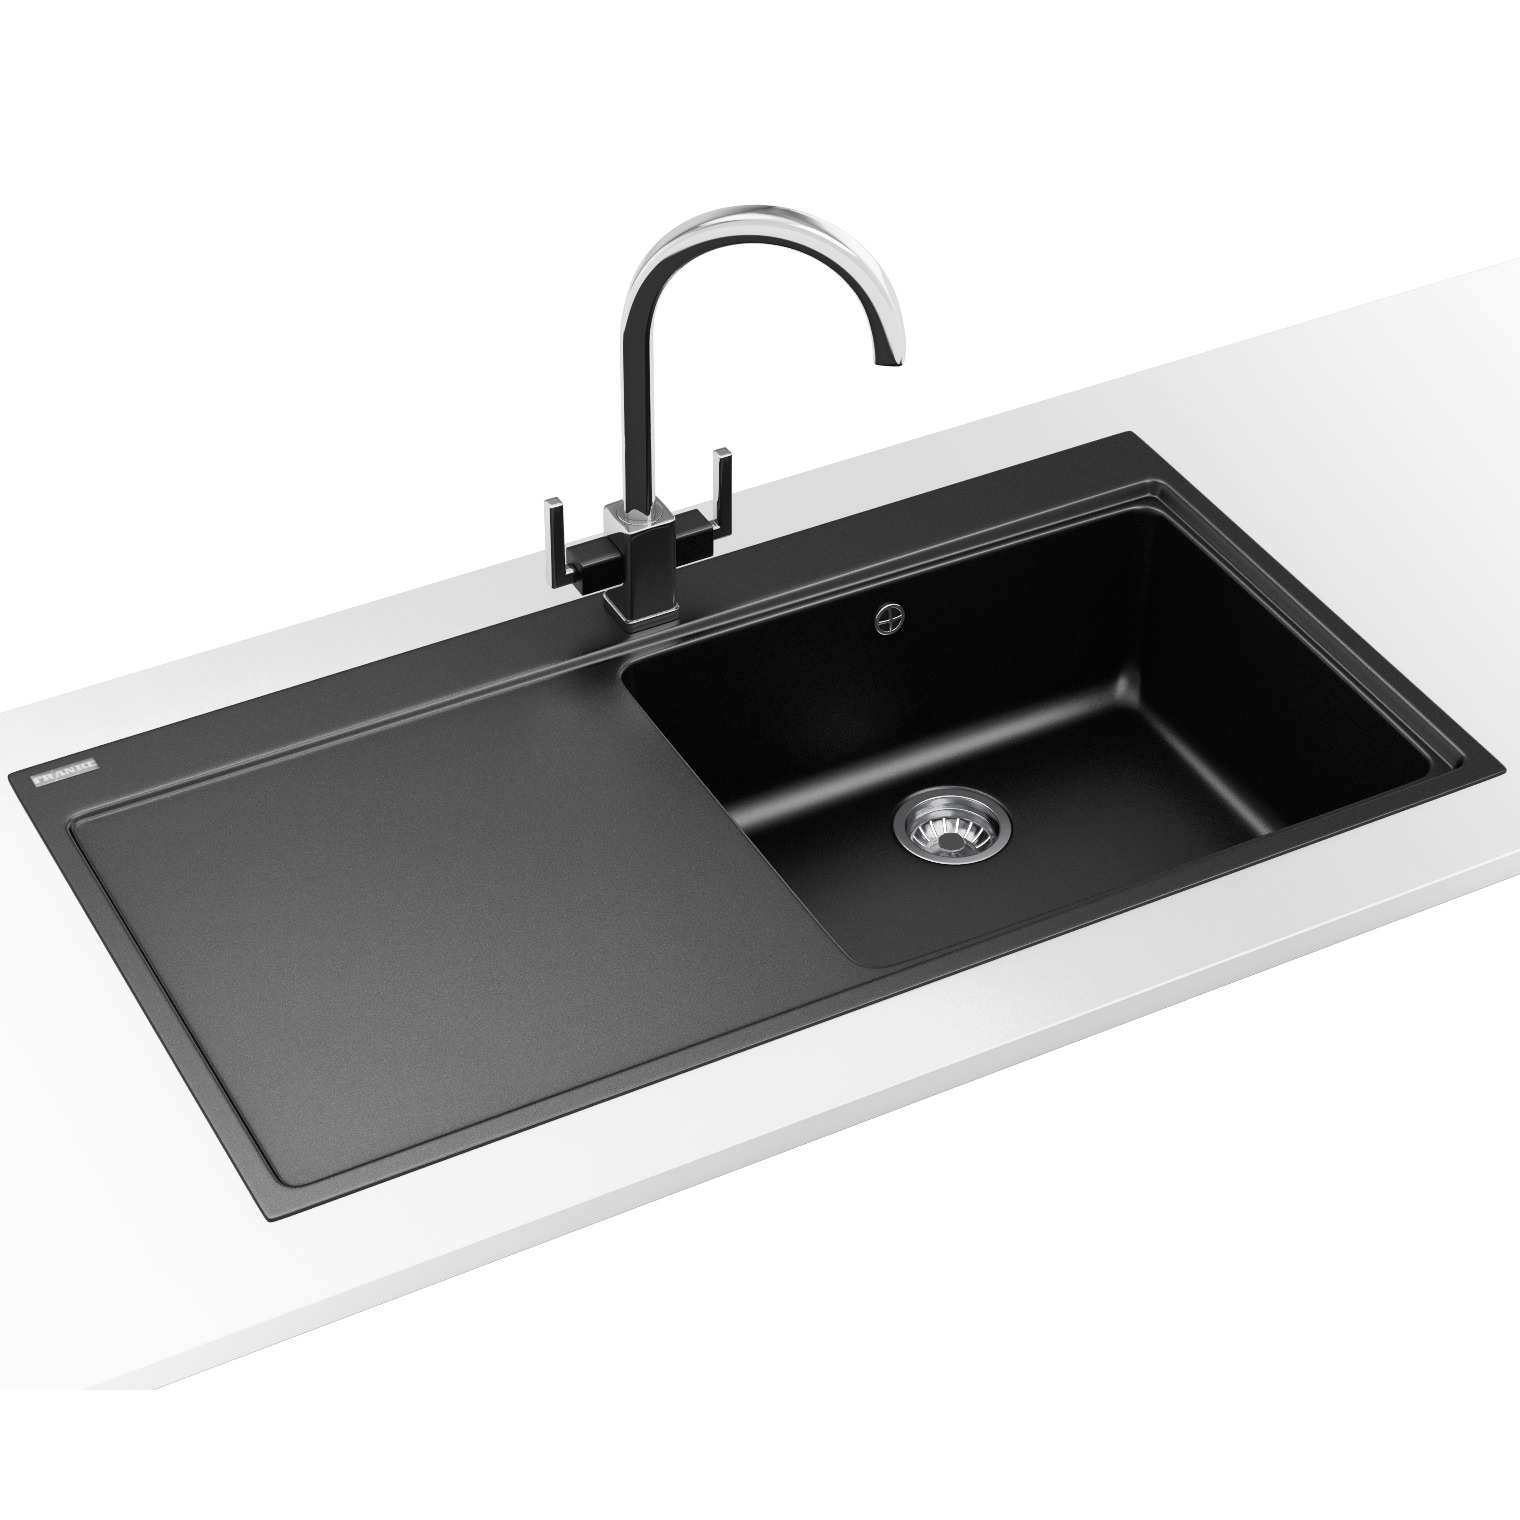 Franke Sinks And Taps : Franke Mythos Designer Pack MTG 611 Fragranite Onyx Sink And Tap 114 ...